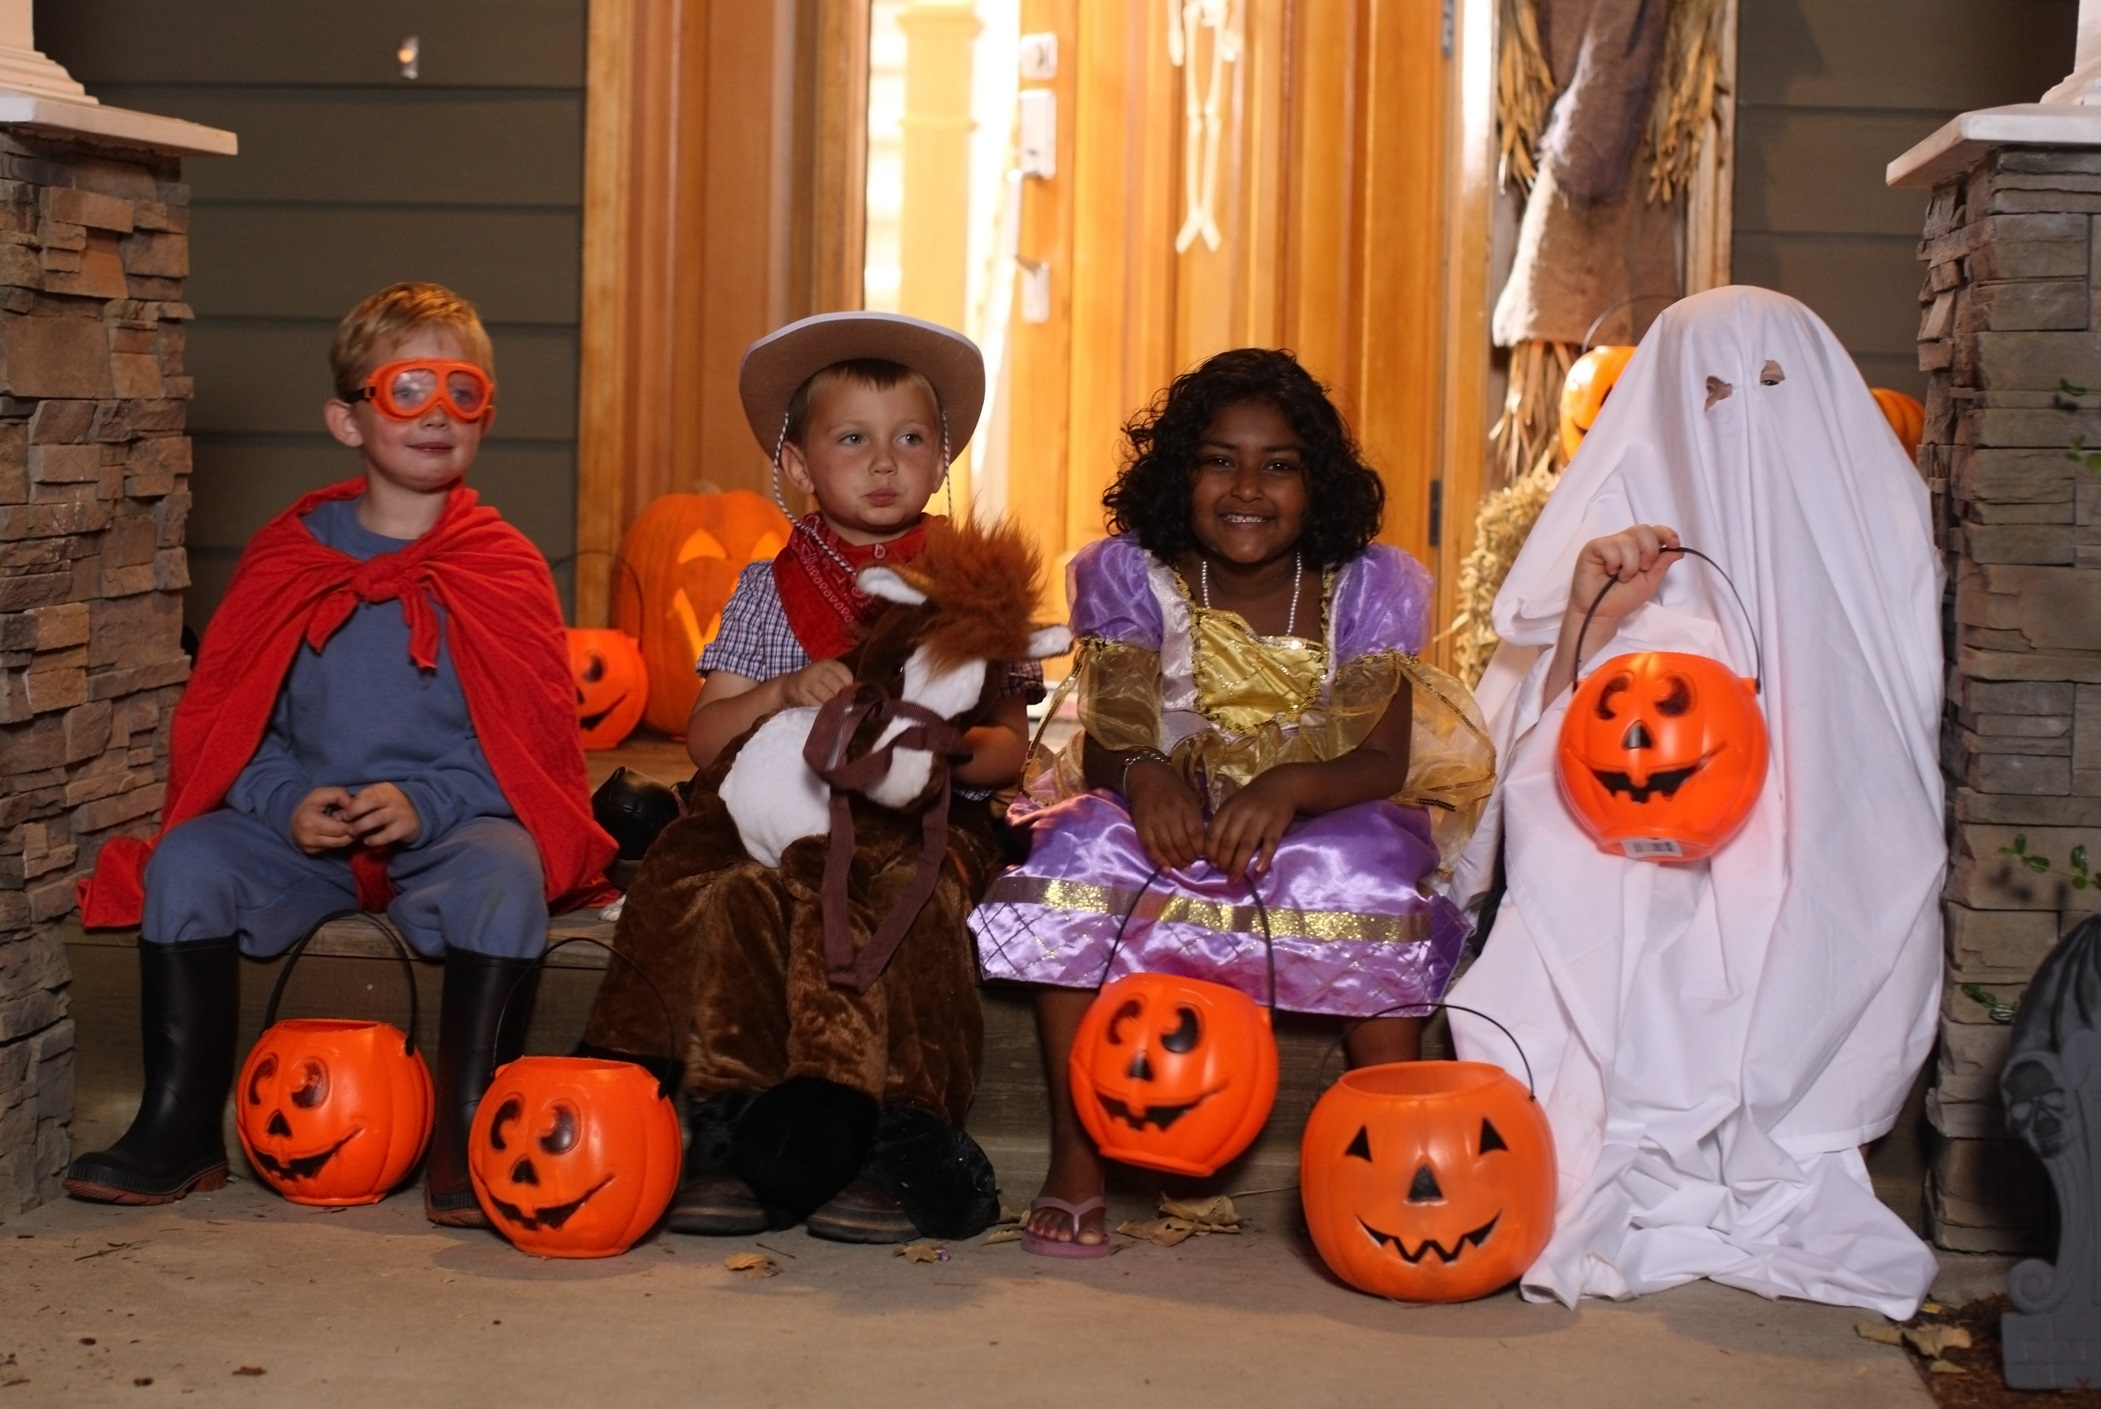 Children sitting on front porch in Halloween costumes